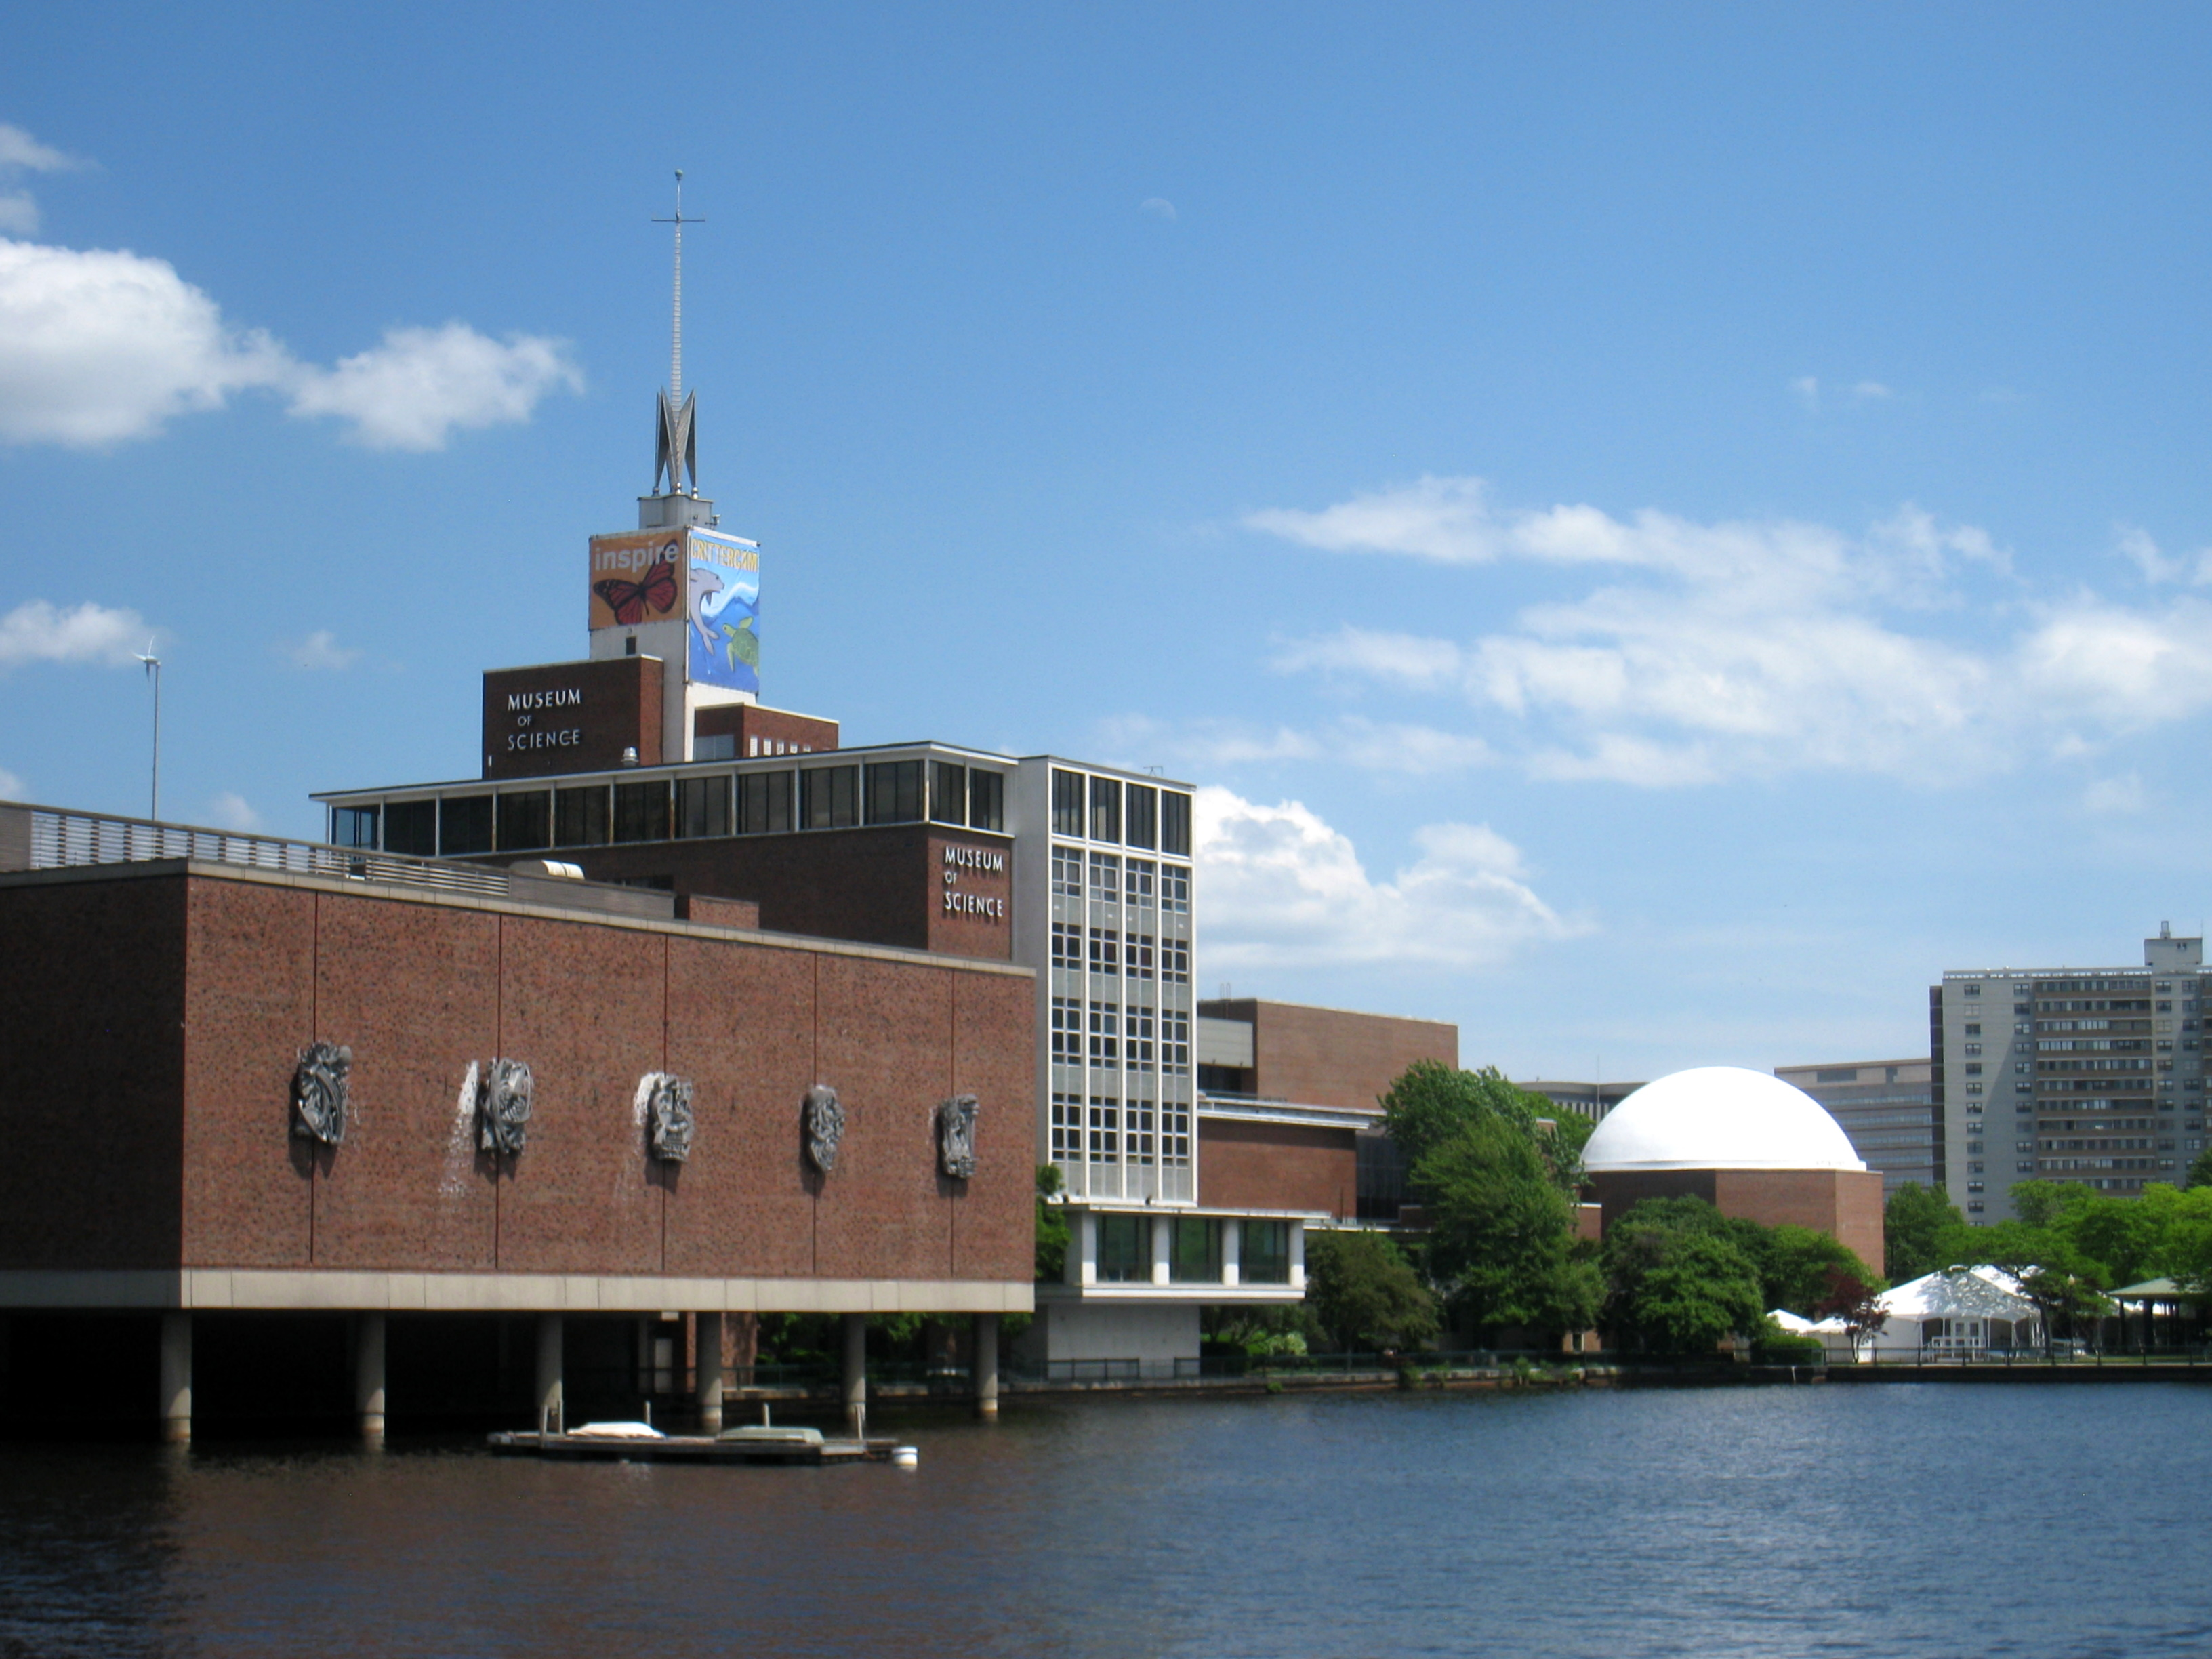 The museum's building dates back to the 1950s, while Boston's efforts to create exhibits related to science predates the Civil War.